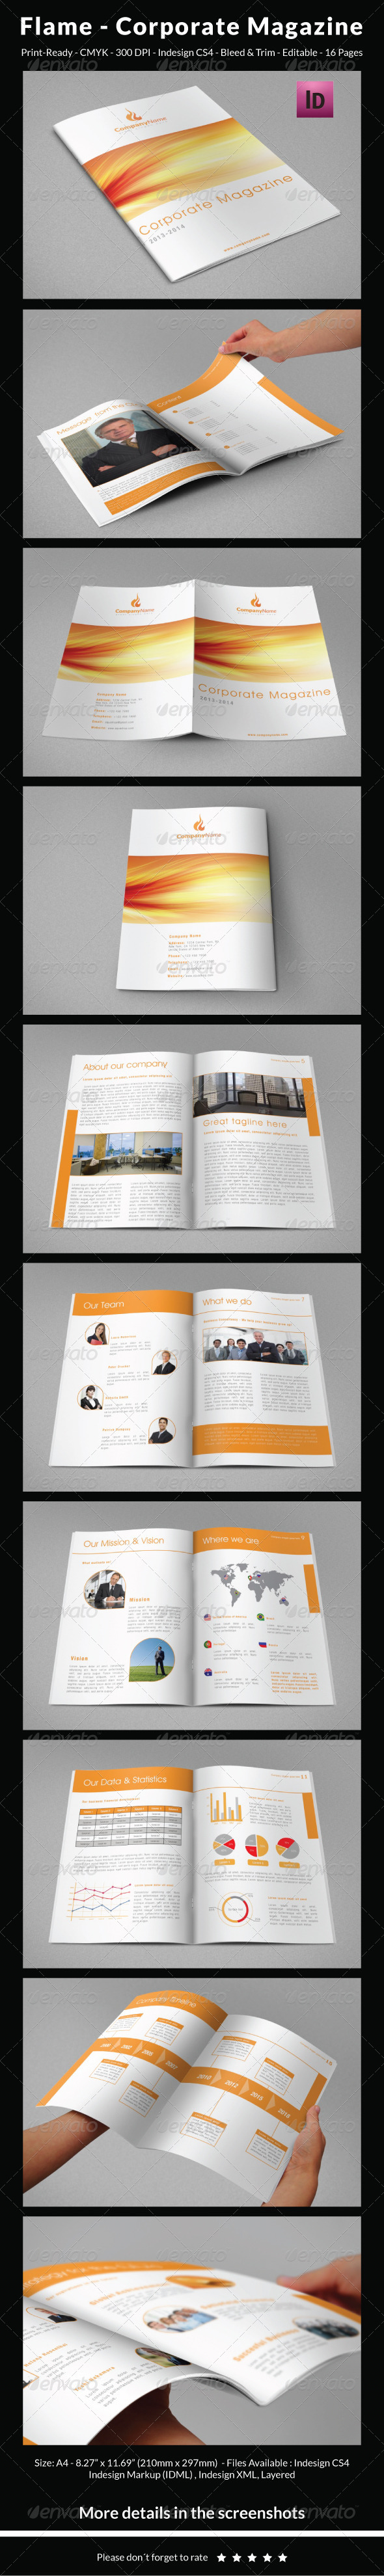 GraphicRiver Flame Company Magazine 5745164